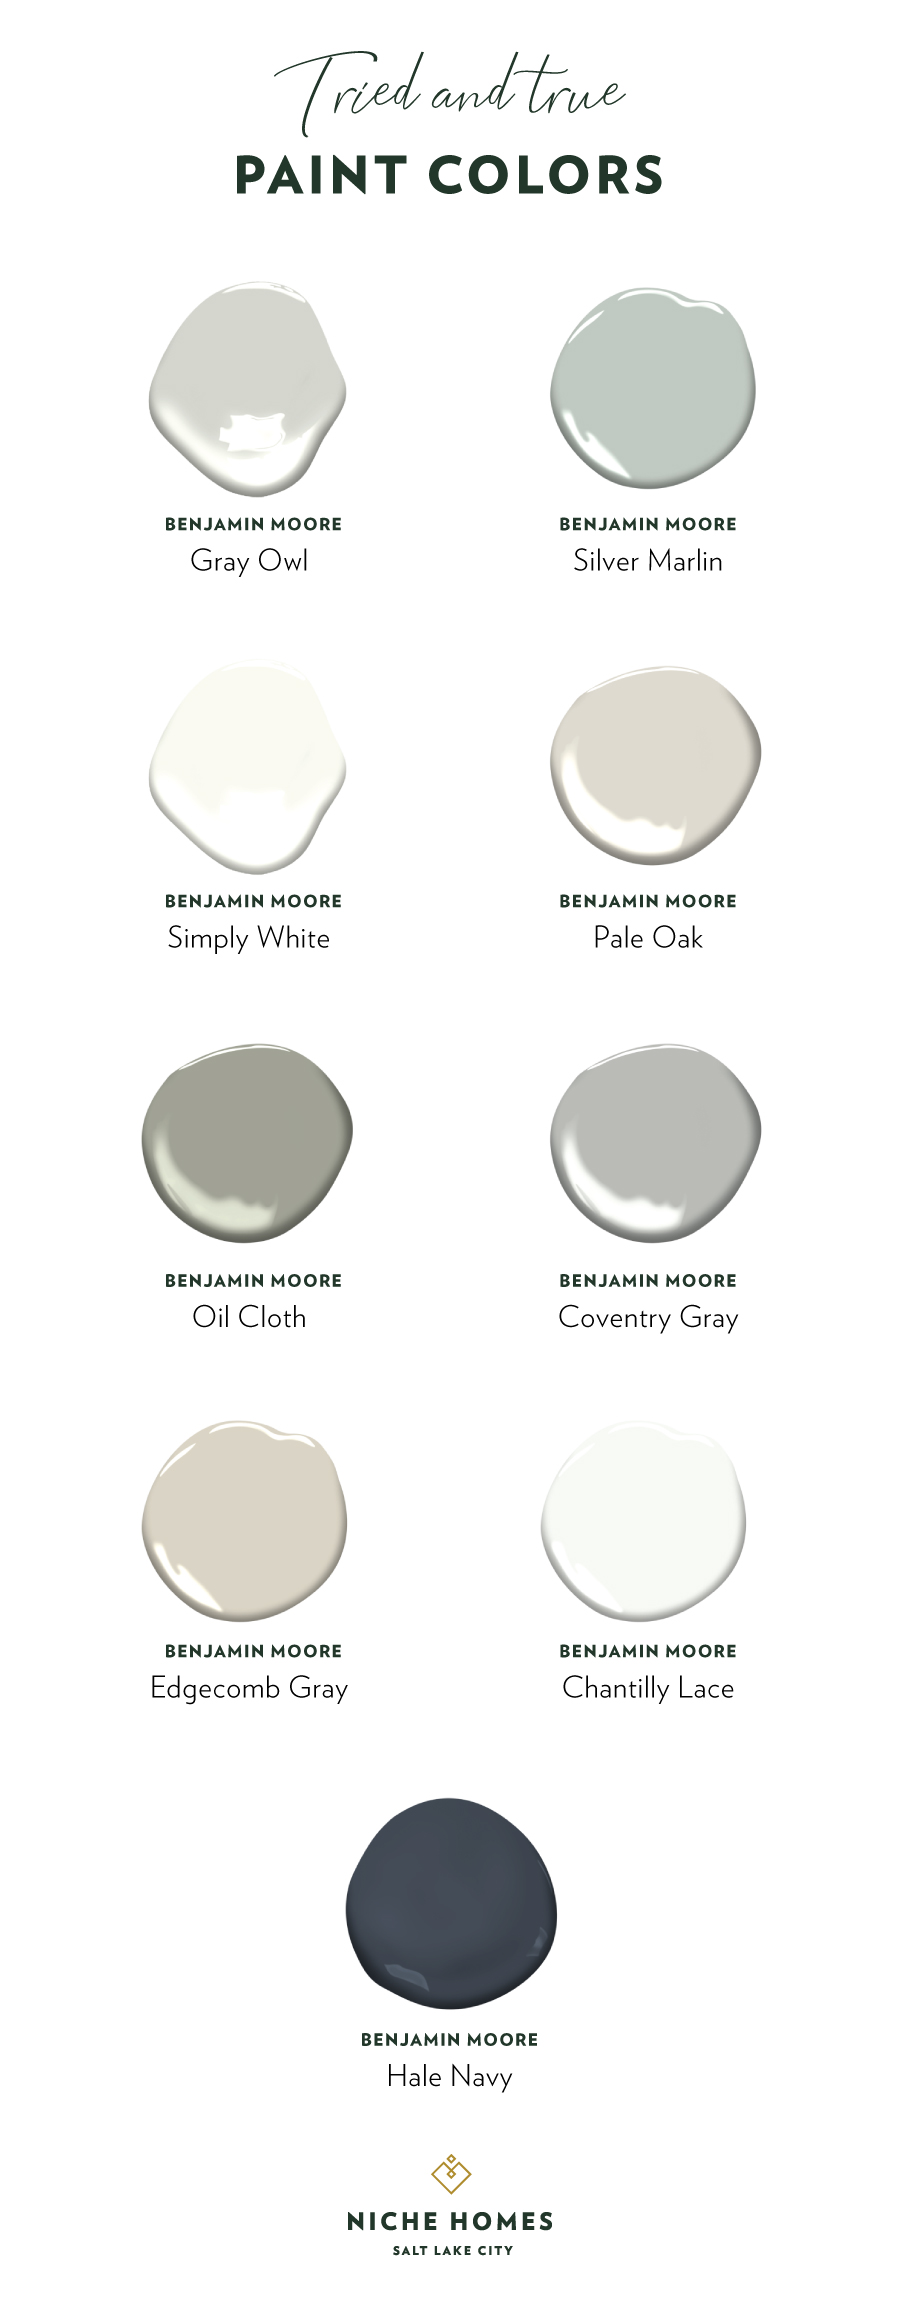 Kayley Danielson S Tried And True Paint Colors Niche Homes